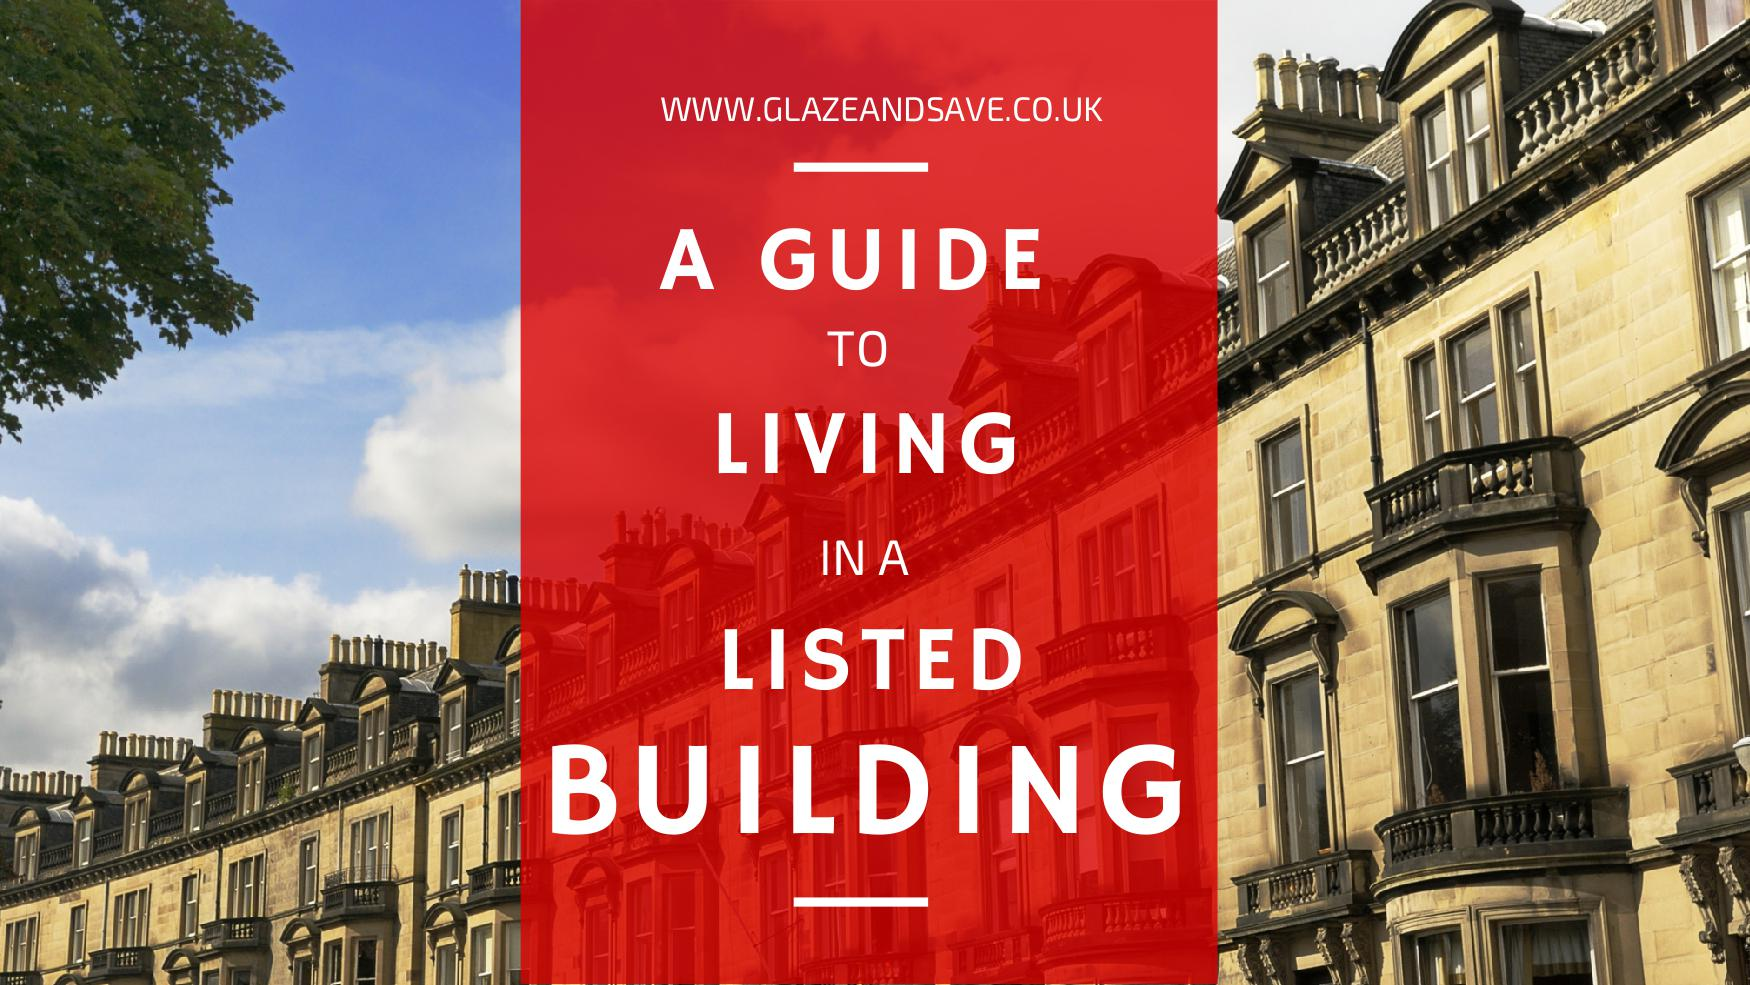 A guid to living in a listed building by Glaze & Save bespoke magnetic secondary glazing and innovative draught proofing based in Perth Scotland.